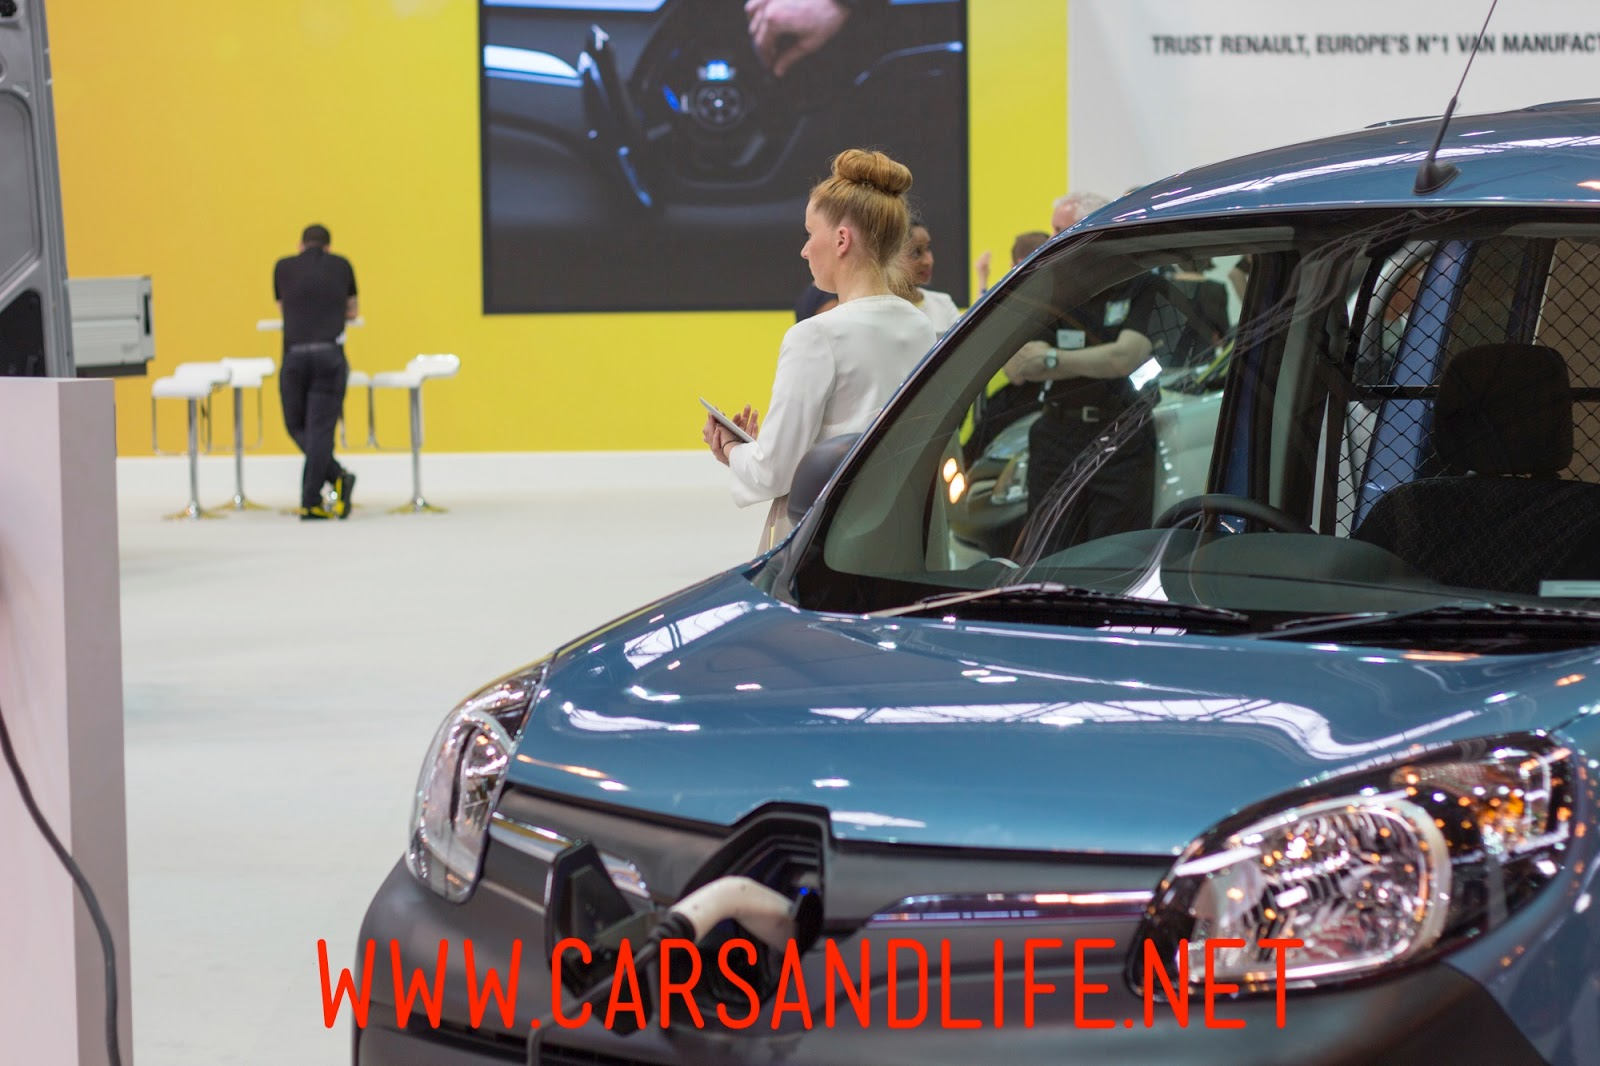 renault commercial vehicles at the cv show 2014